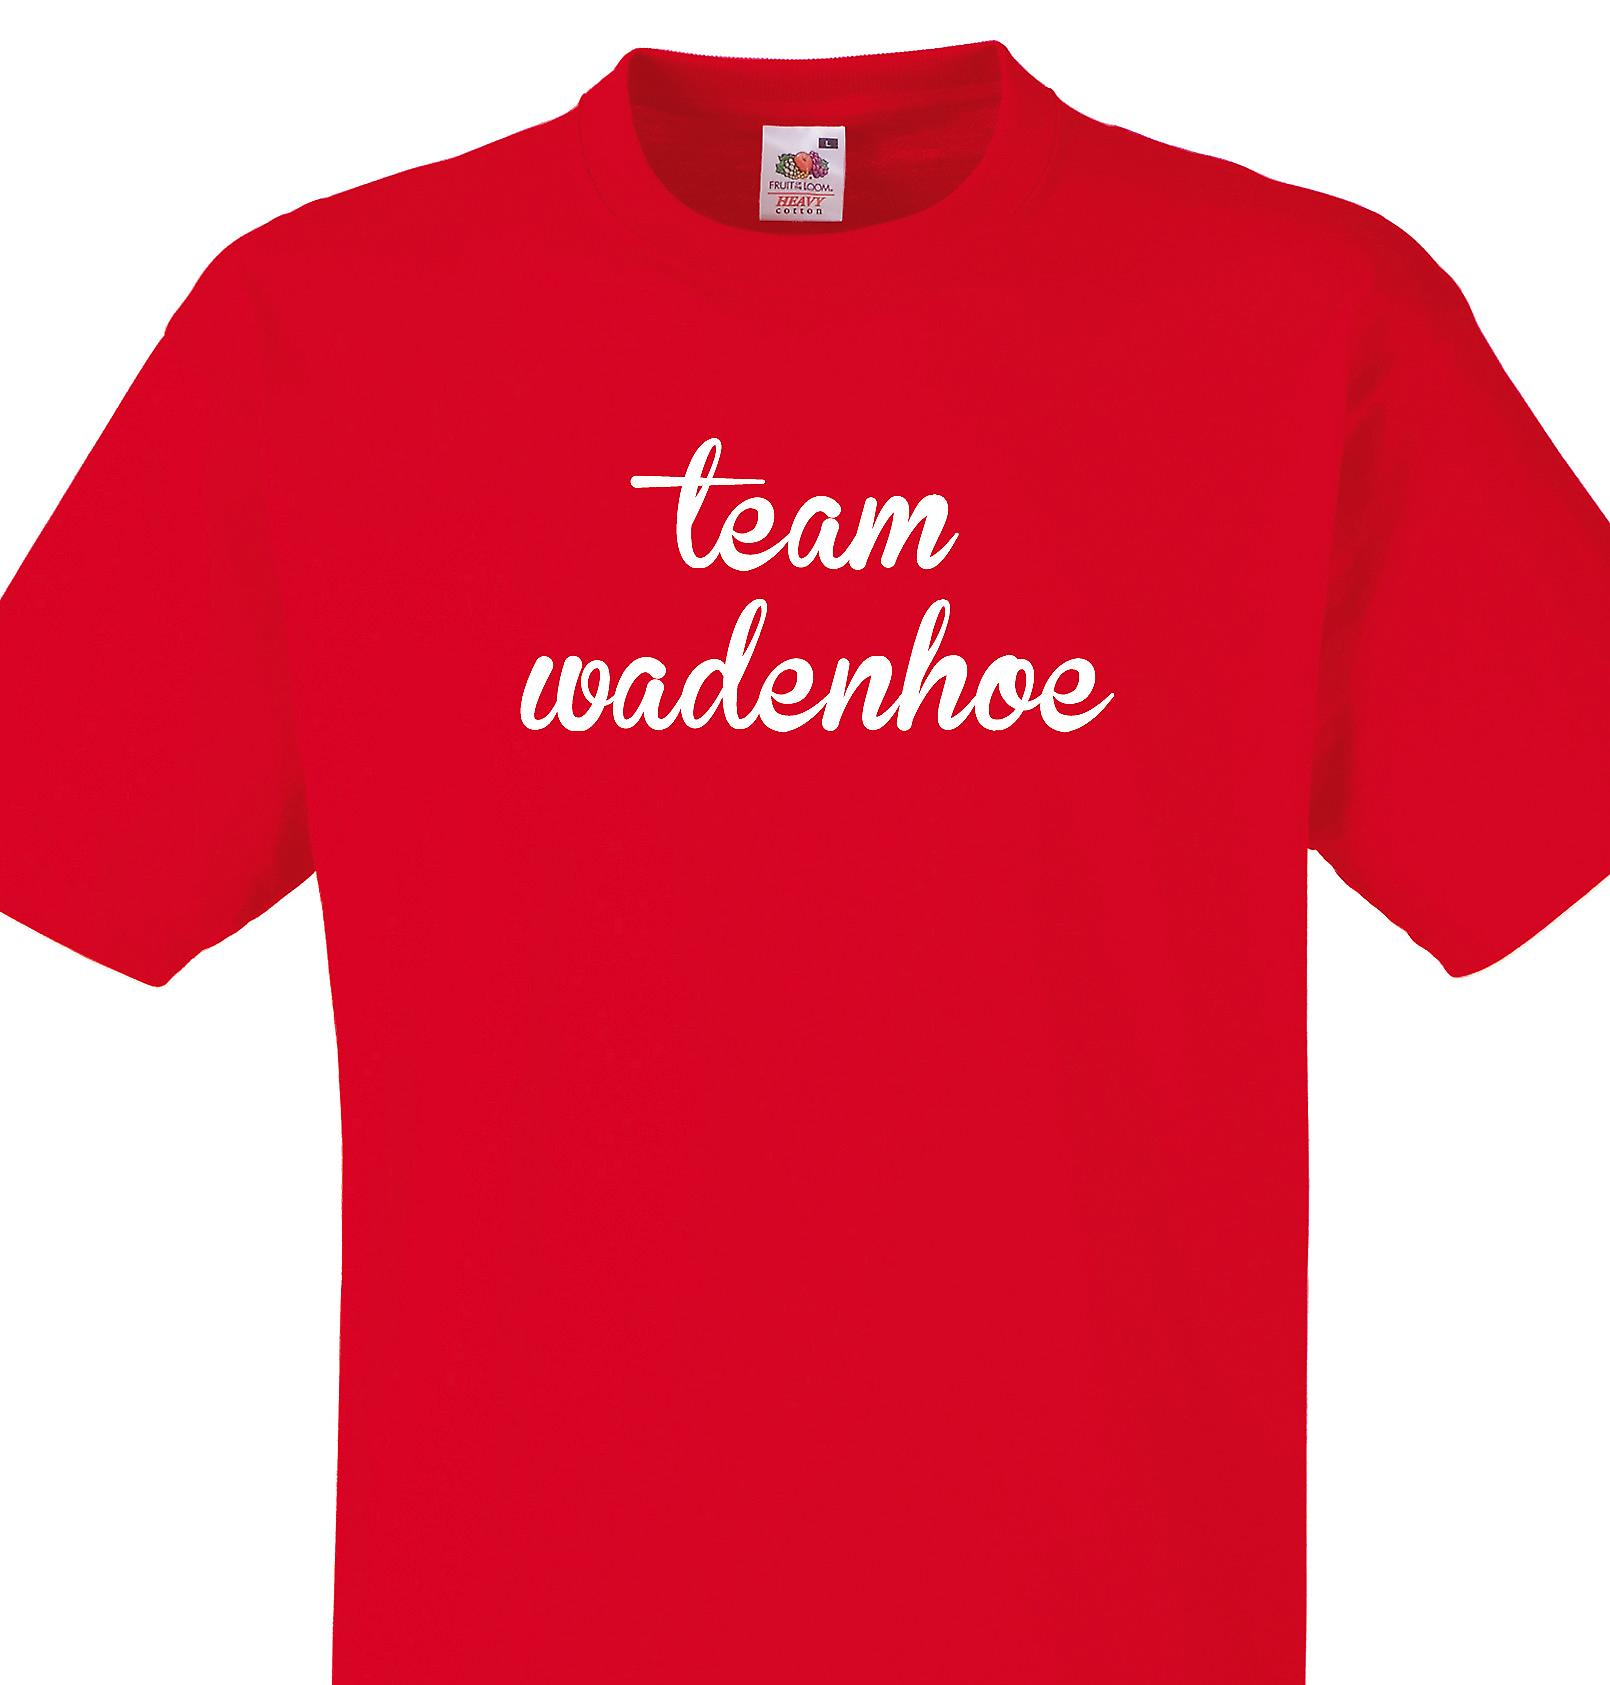 Team Wadenhoe Red T shirt